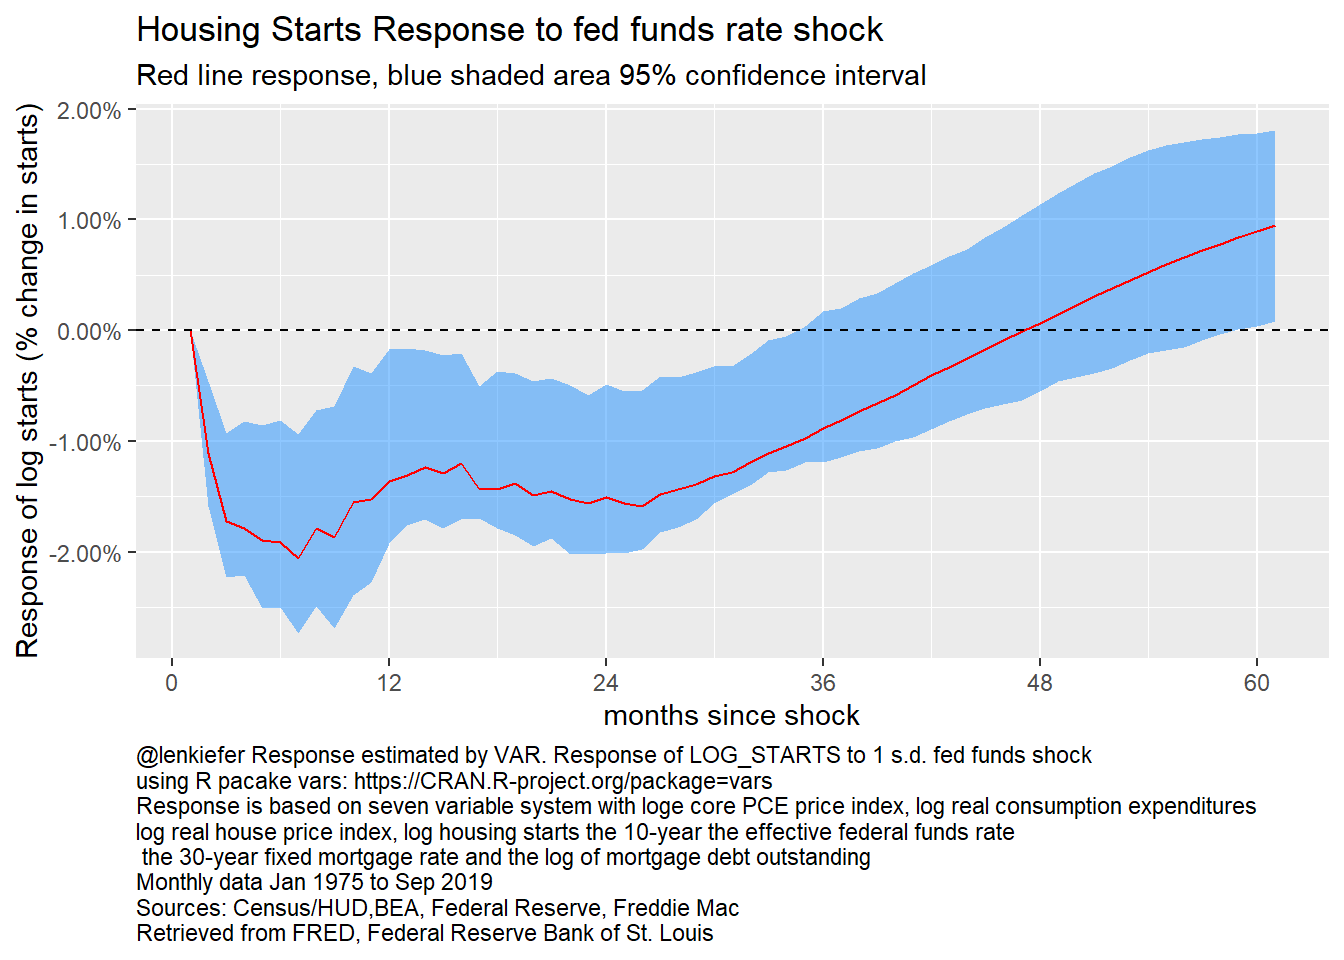 Response of log starts to fed funds rate, 7 variable VAR